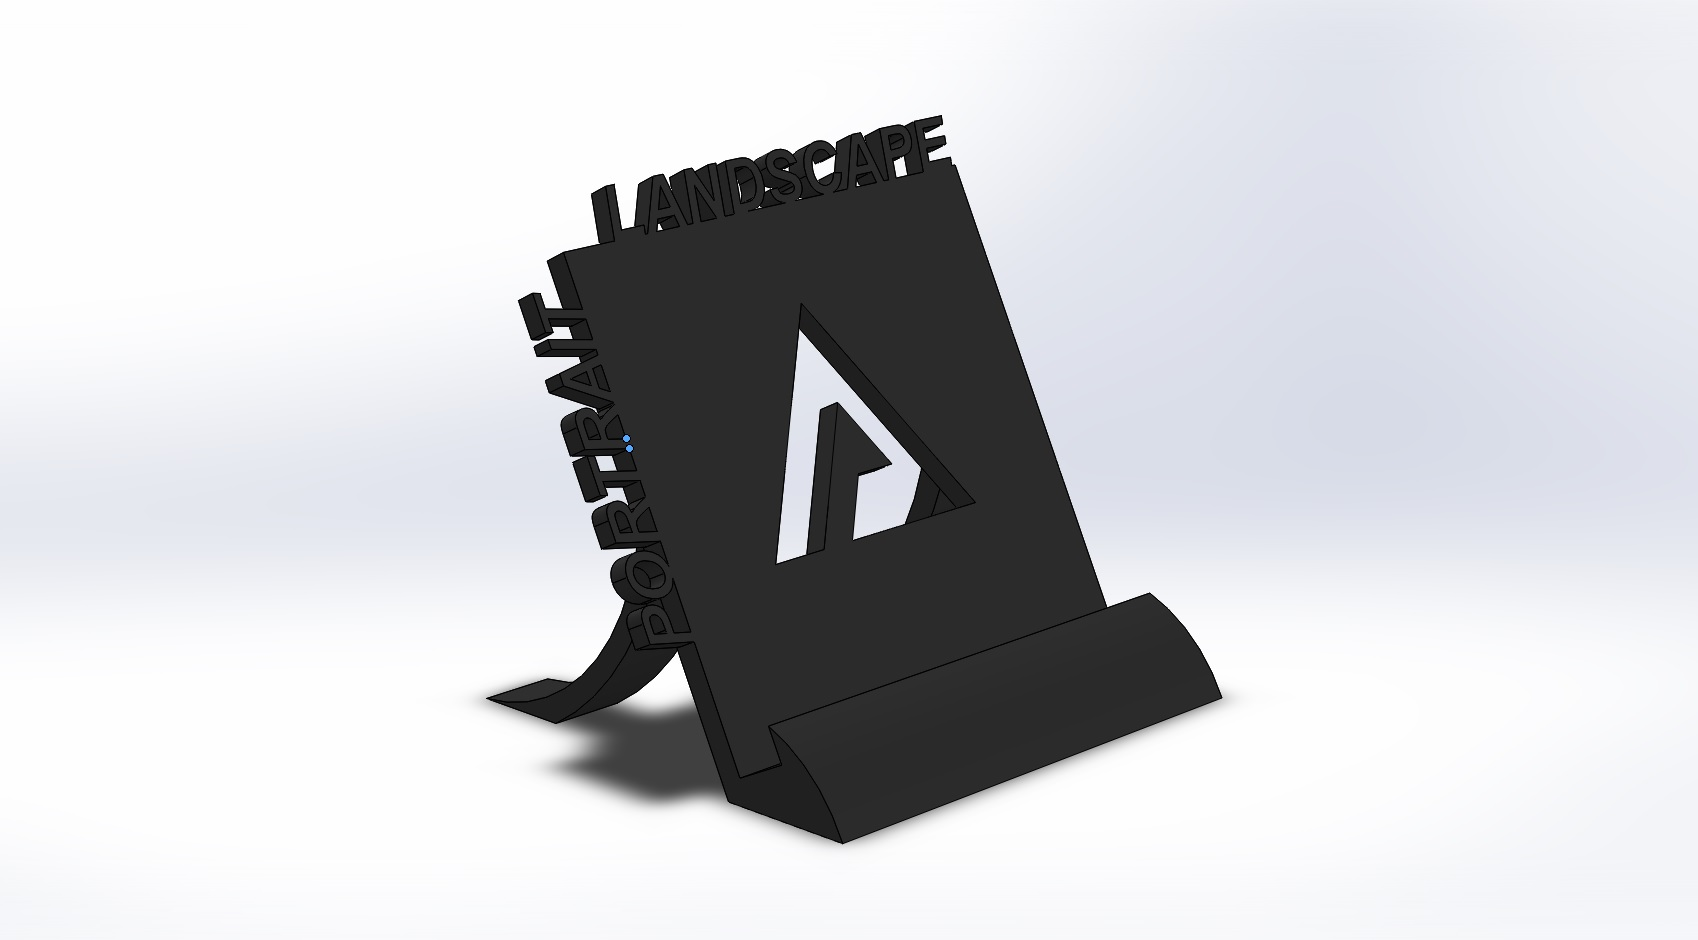 Picture of Designing, Modelling and 3D Printing a Cellphone Stand